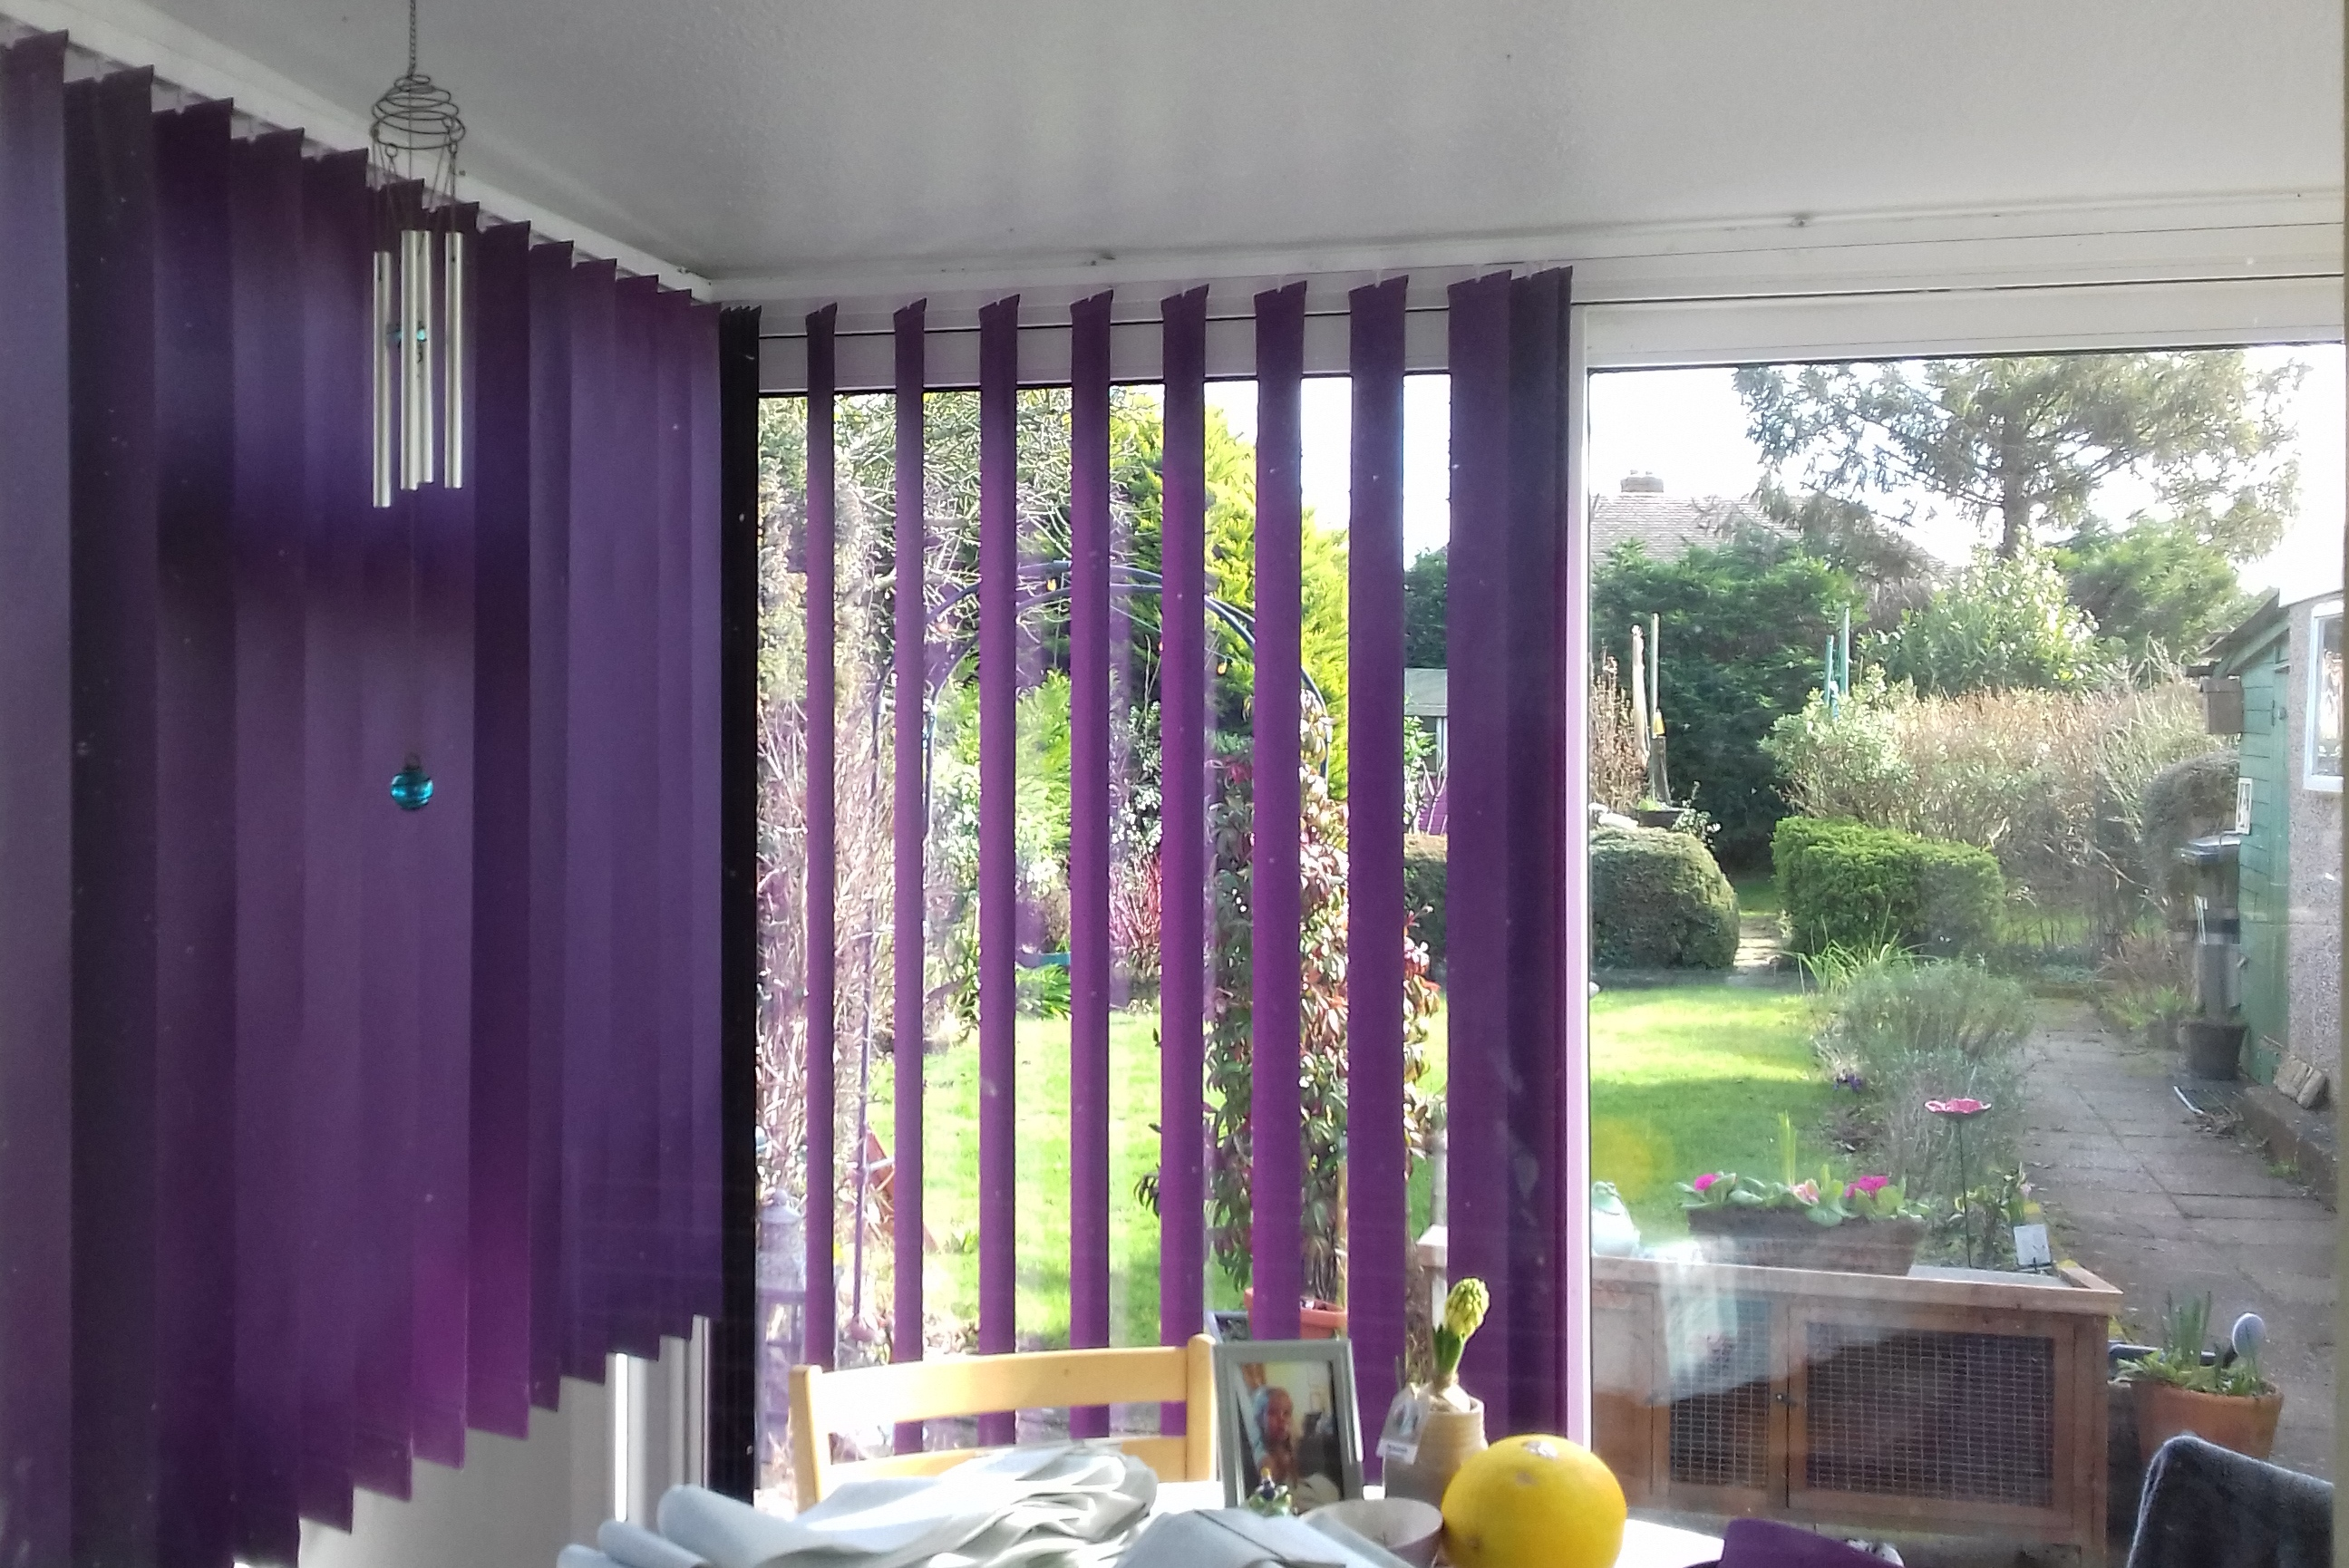 purplereplacementblindslats.jpg